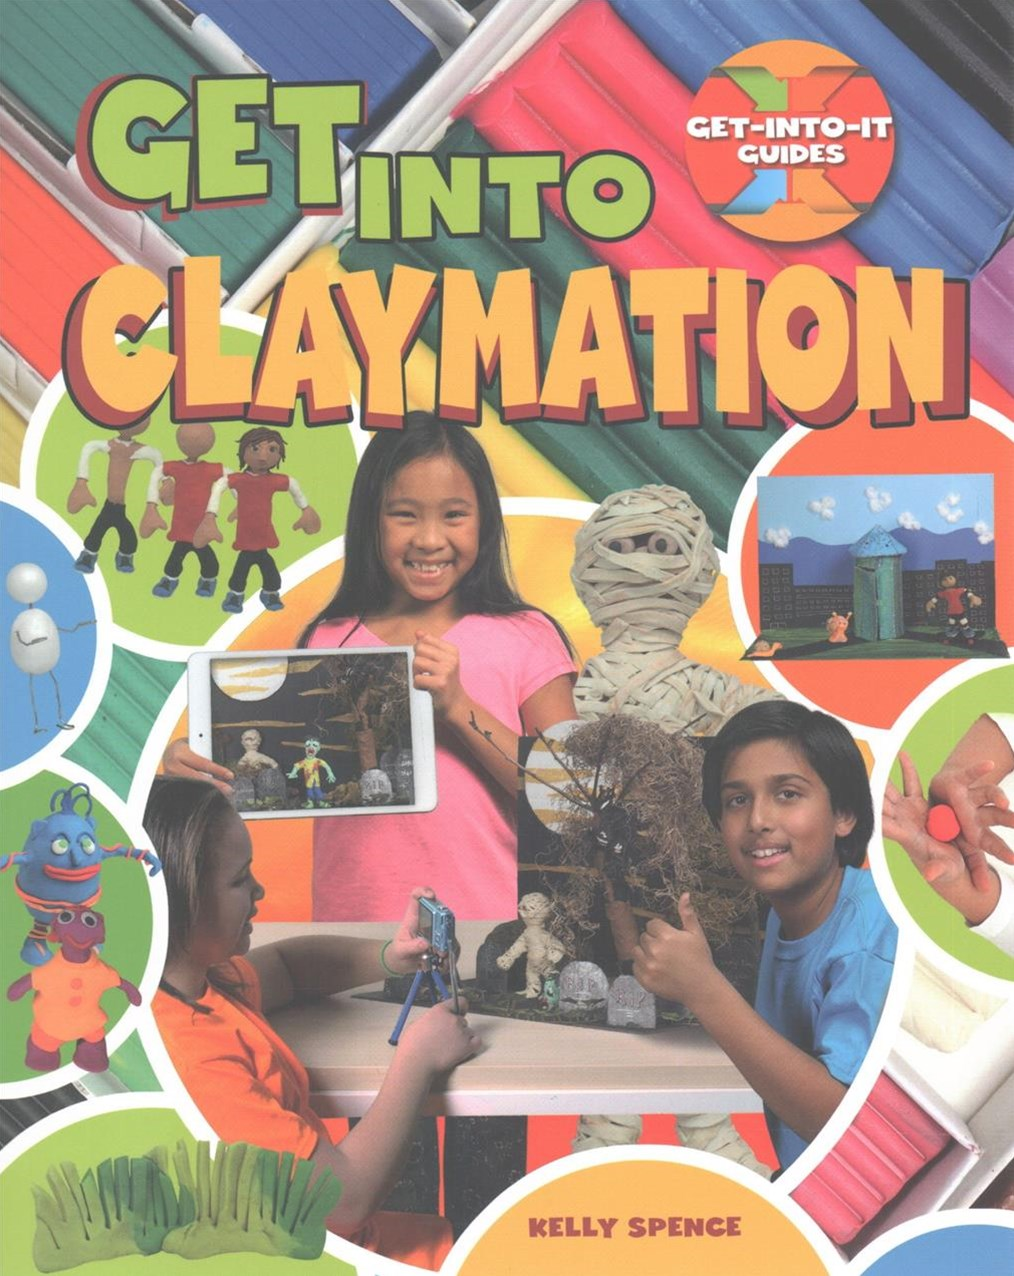 Get into Claymation - Get-Into-It Guides